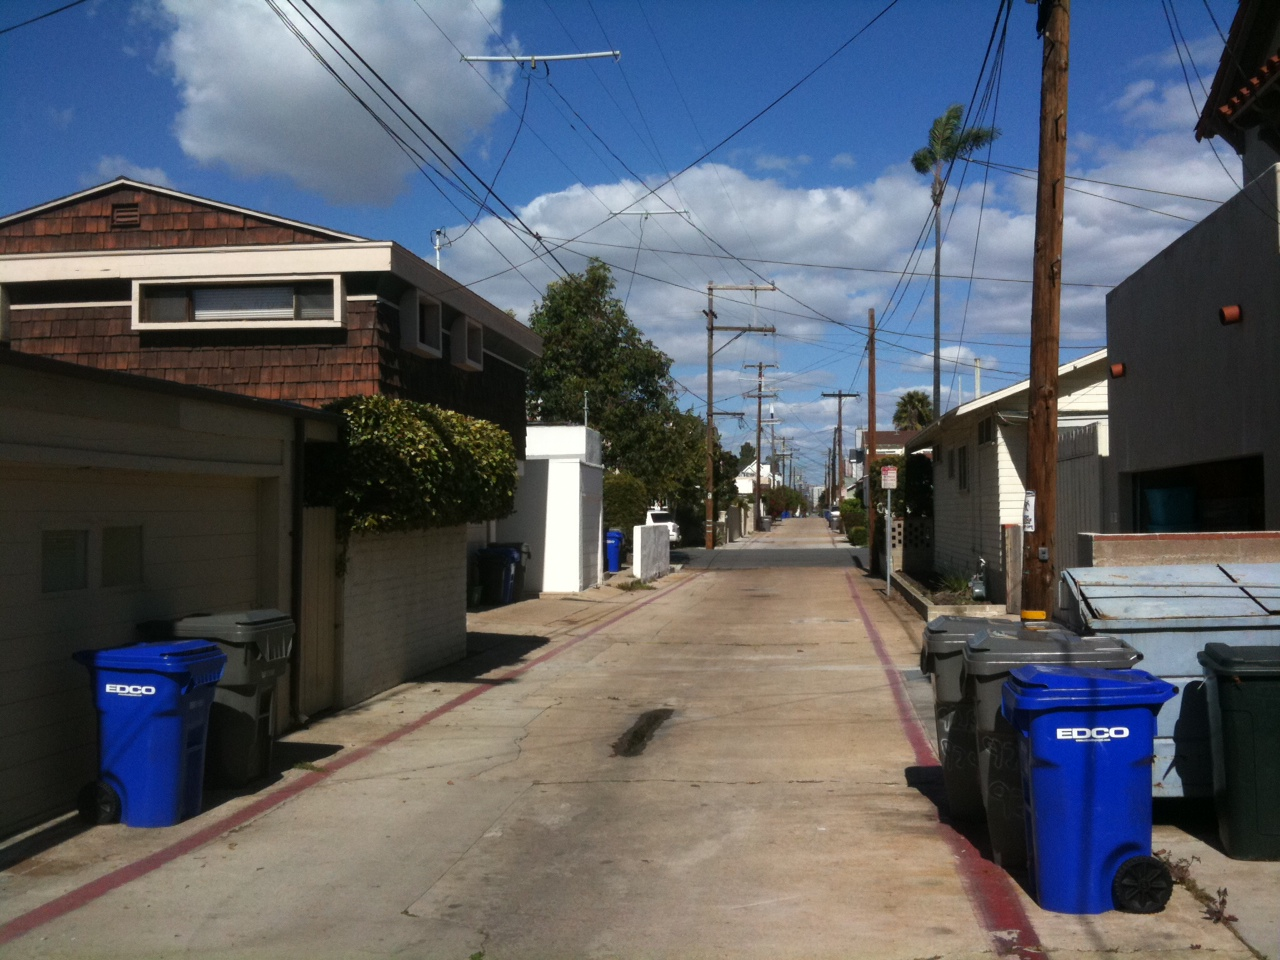 Many Streets In Coronado Have Alleys Behind Homes. In Most Cases, They Are  Primarily Used To Enter Into Oneu0027s Garage Or Store Your EDCO Trash Cans.